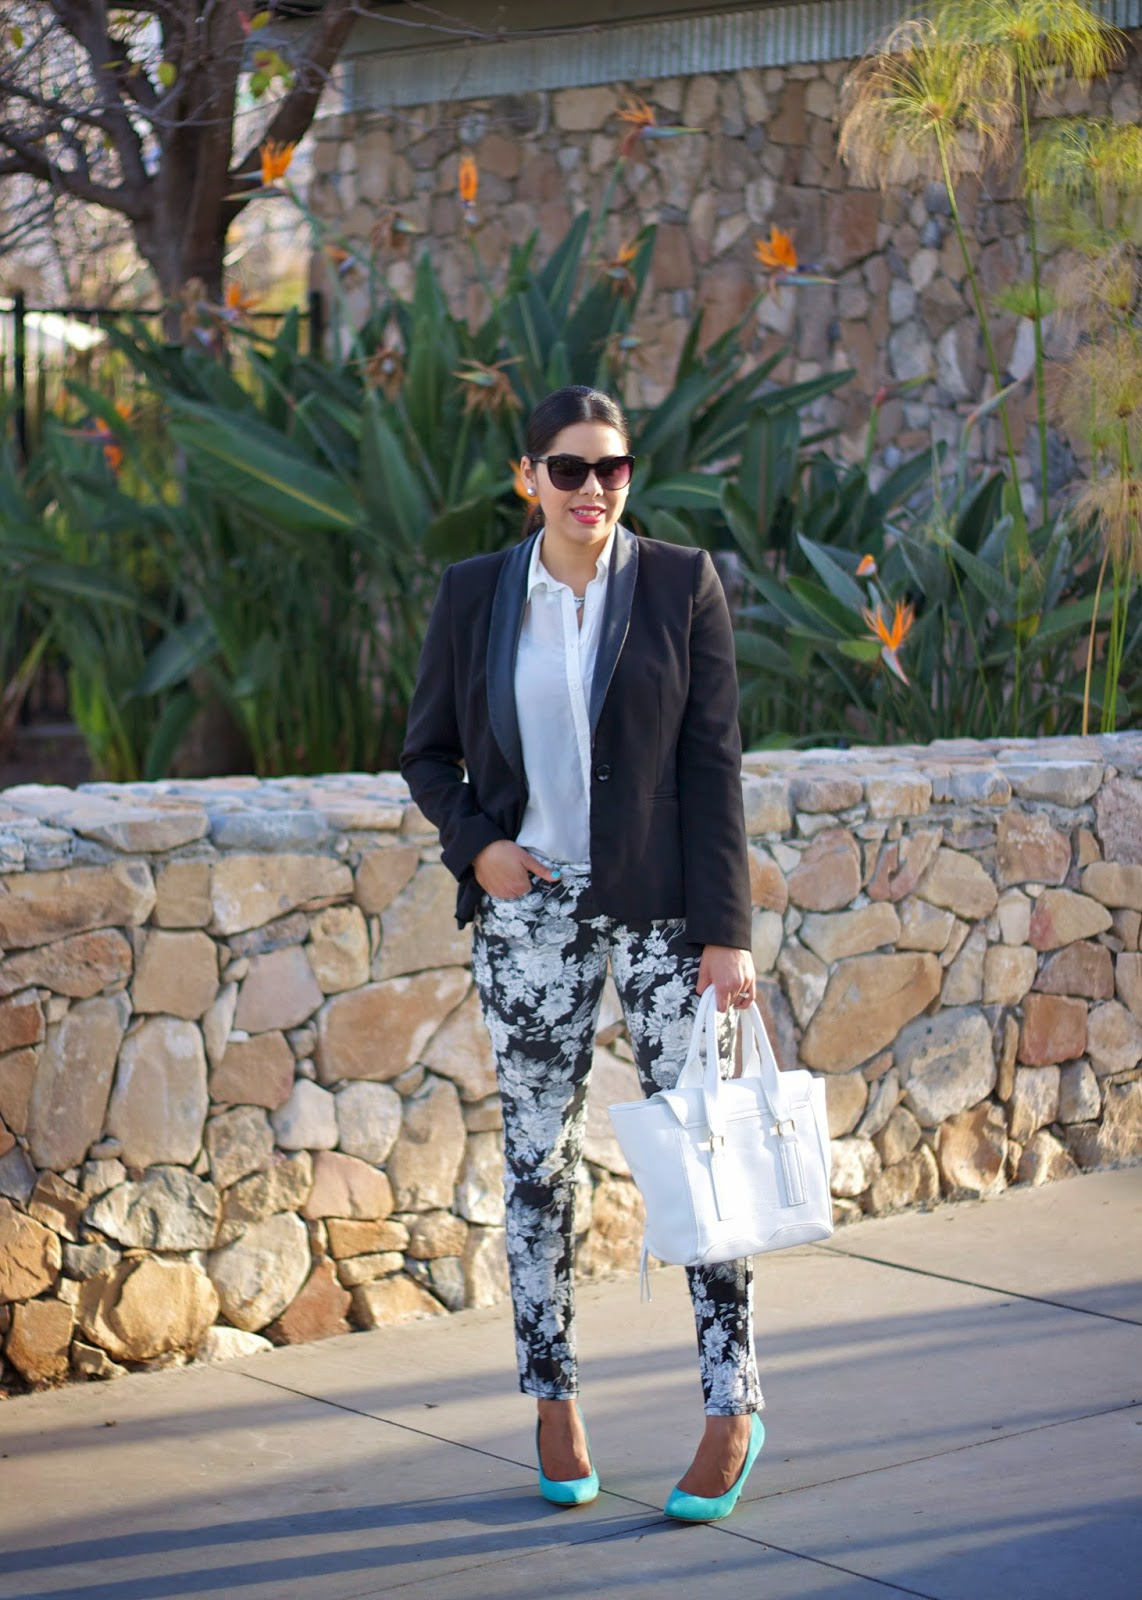 Black and White Floral Pant with Mint Heels, San Diego Spring Outfit